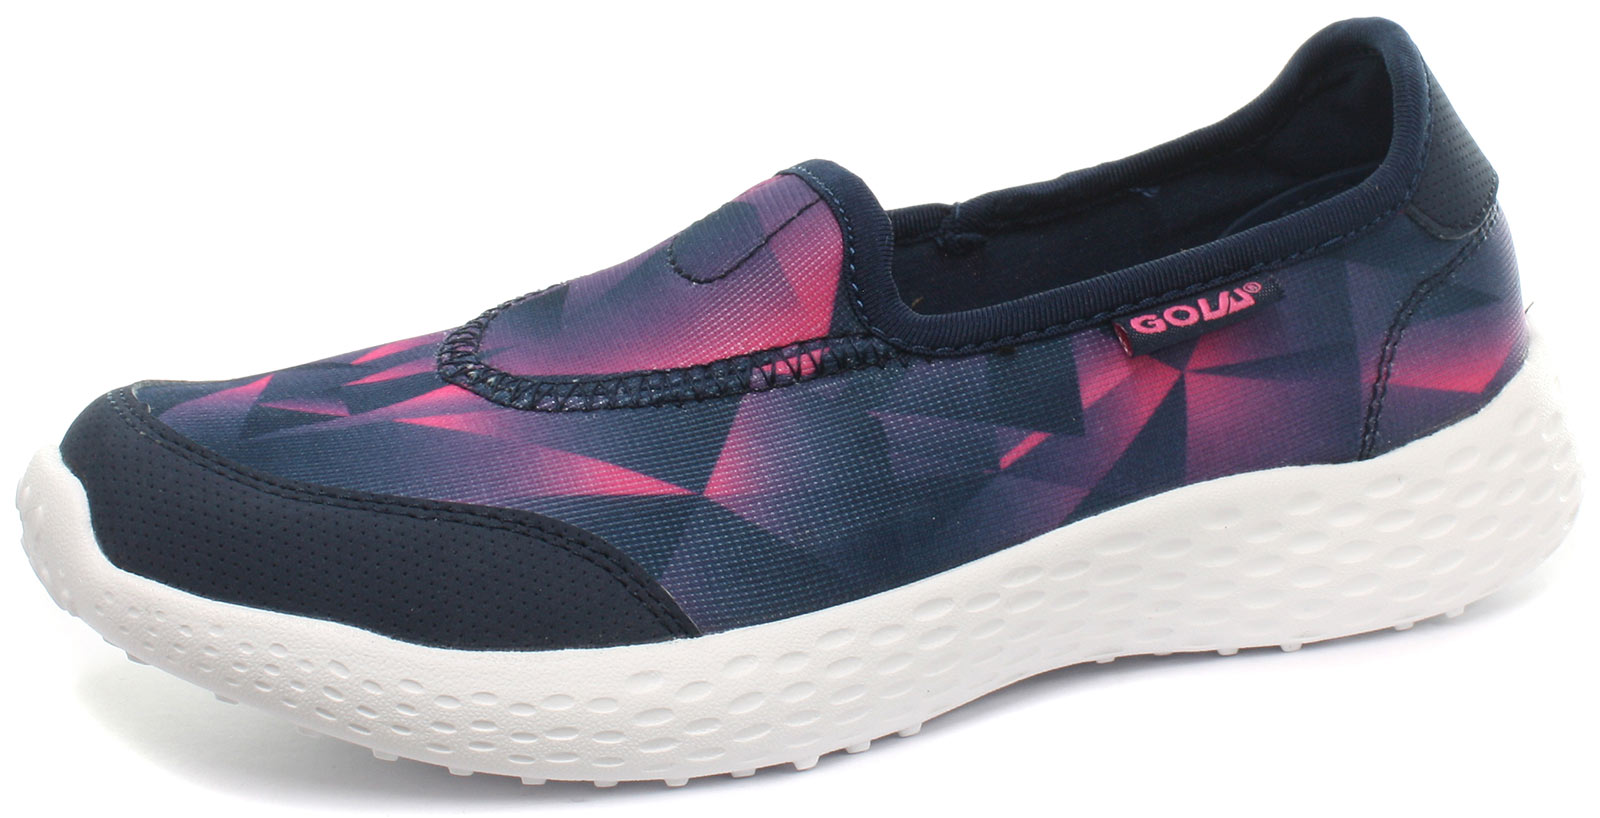 Womens San Luis Fitness Shoes Gola